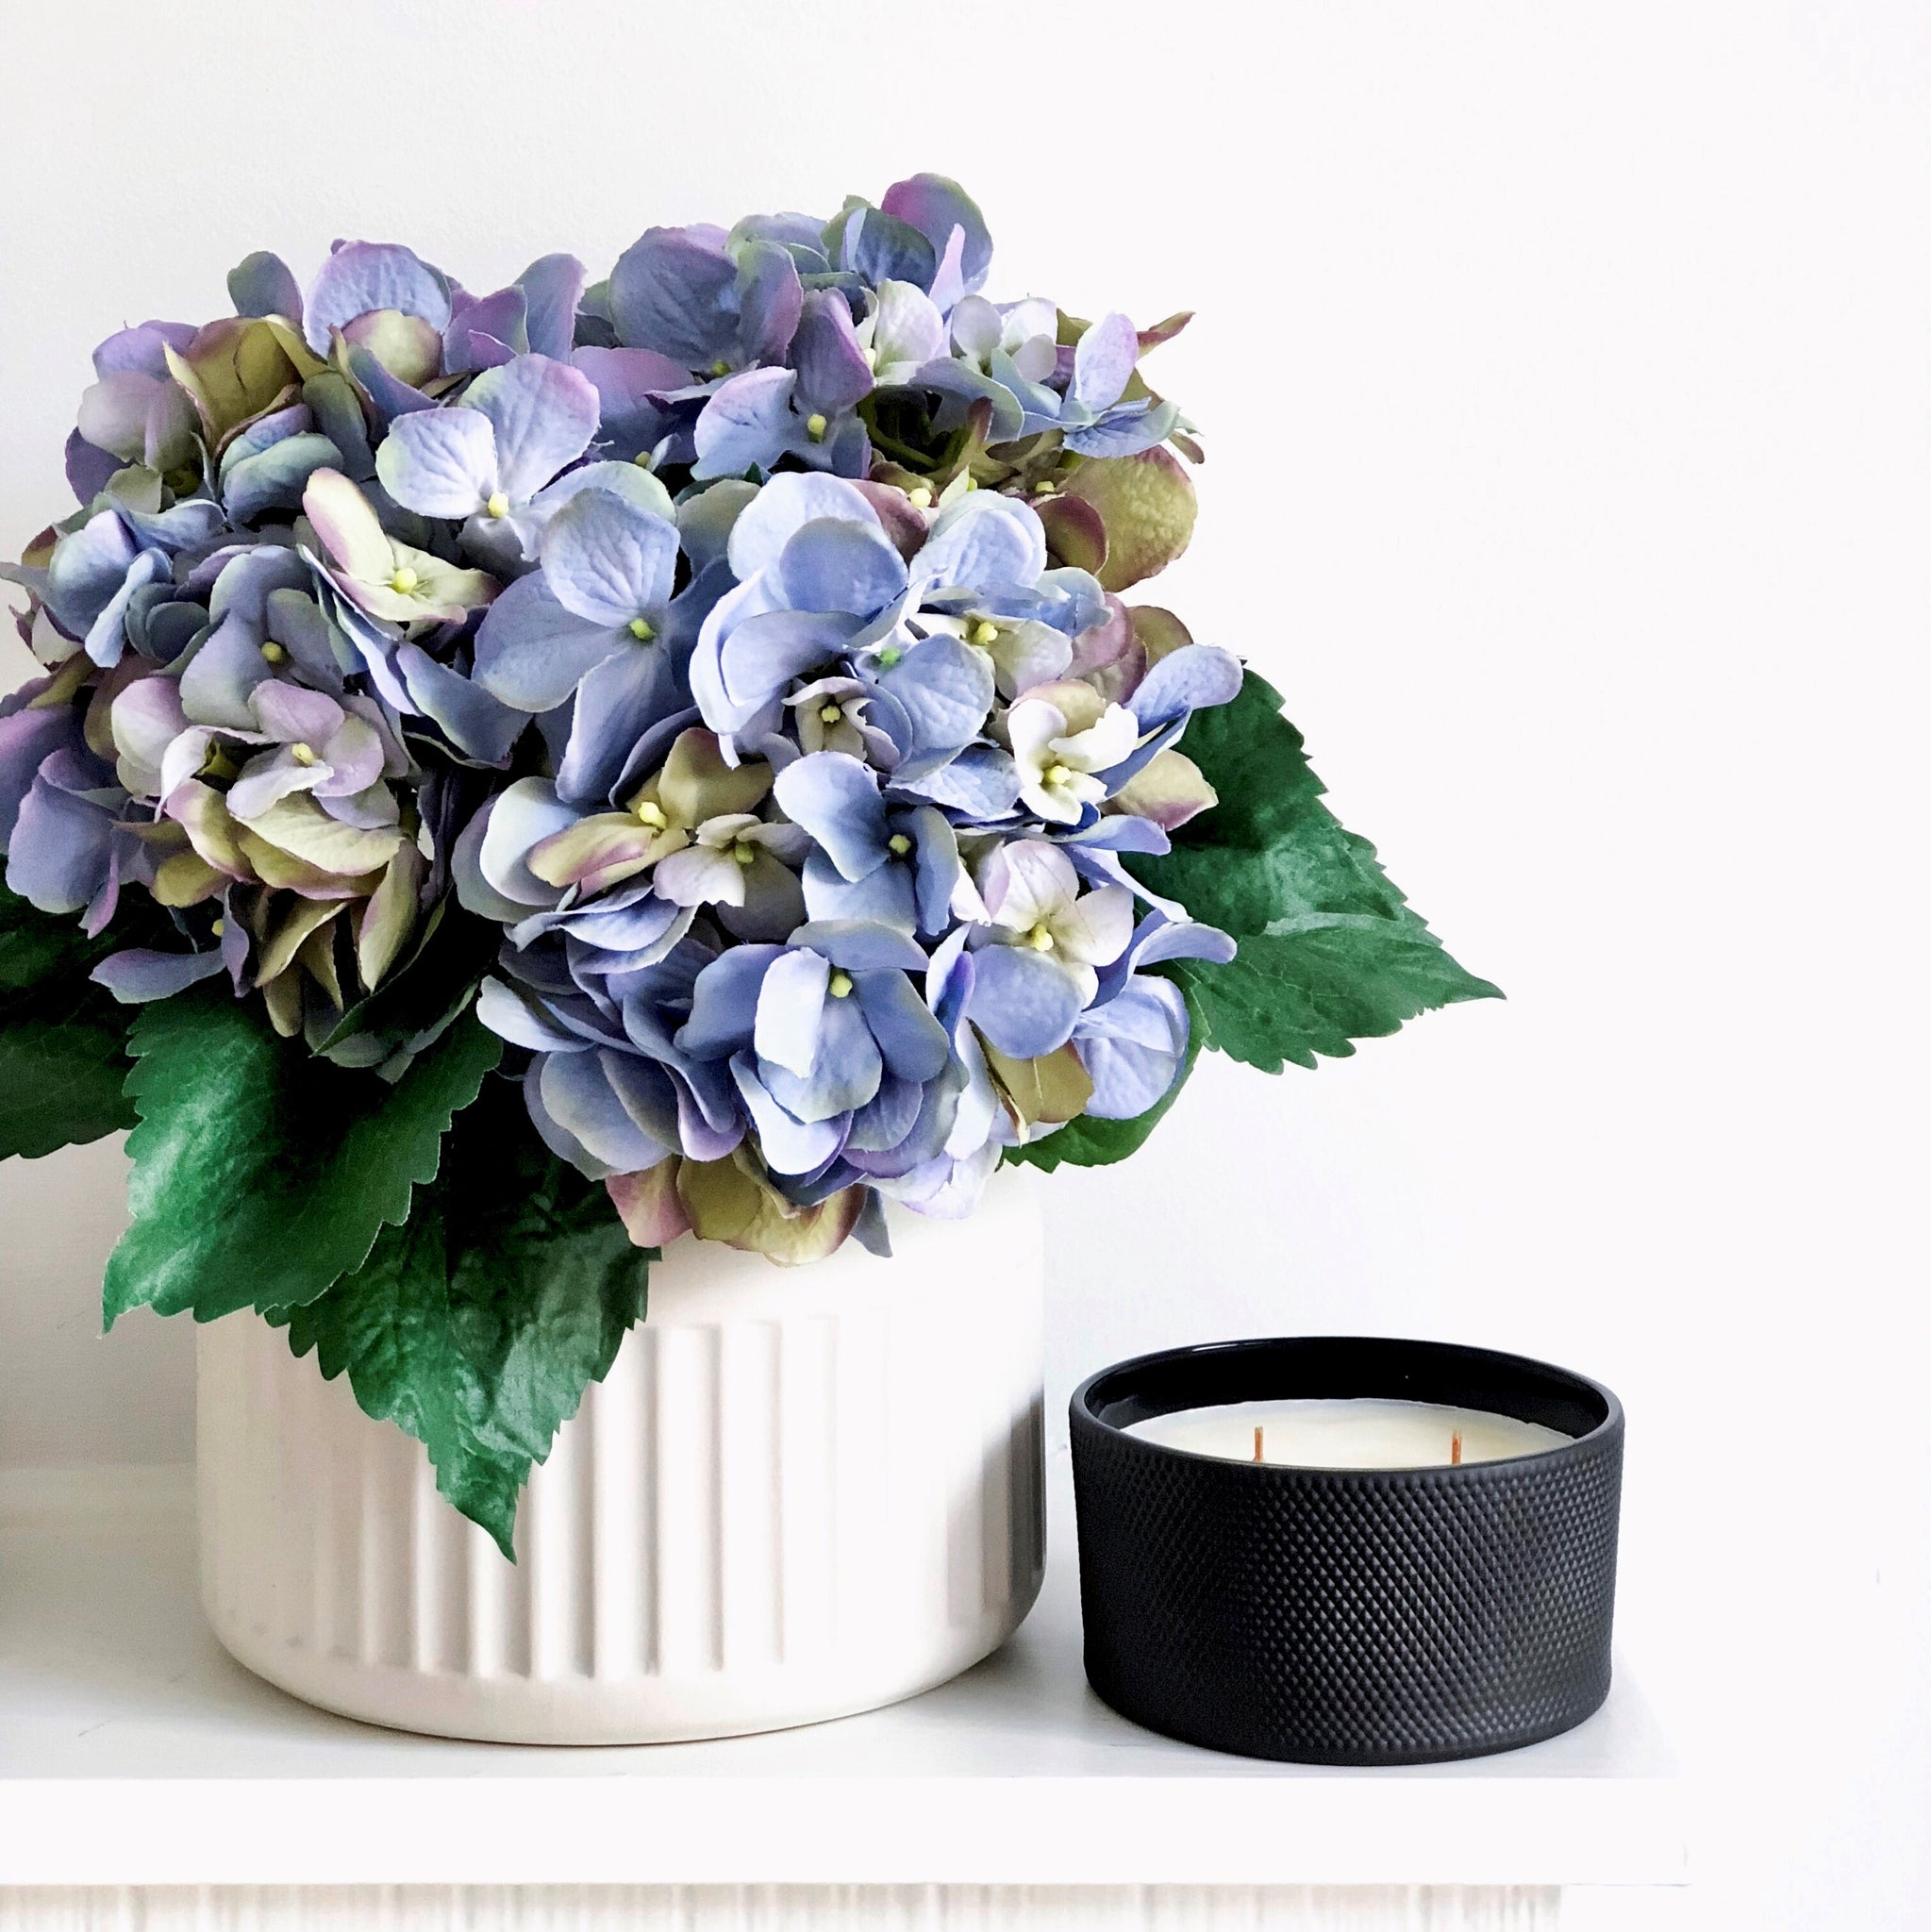 Blue Hydrangea Bouquet - Faking Beautiful